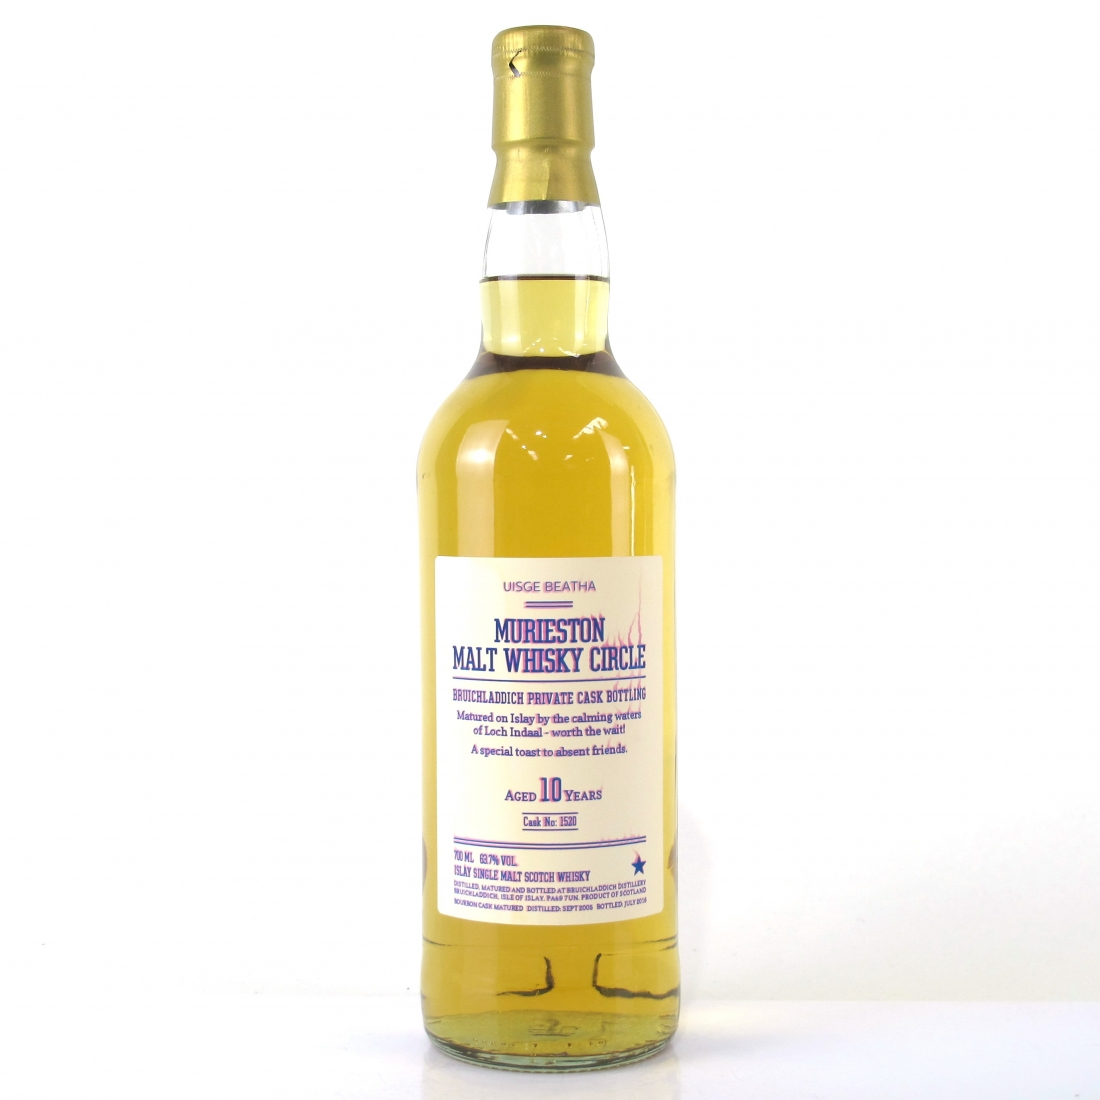 Bruichladdich 2005 Private Cask 10 Year Old #1520 / Murieston Malt Whisky Circle